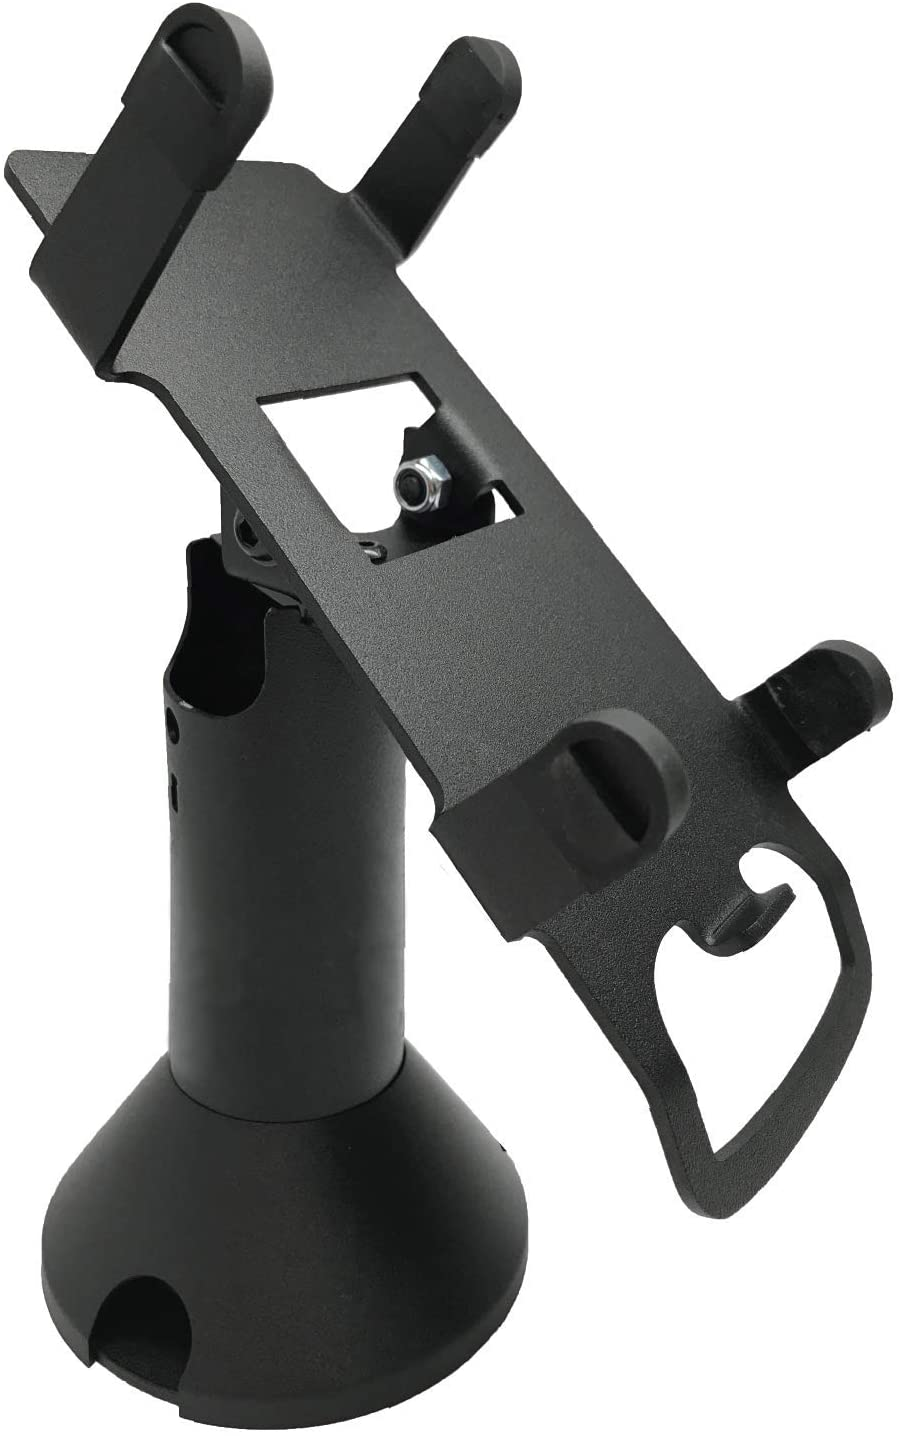 DCCStands Standard Swivel and Tilt Ingenico ICT220/250 Terminal Stand, Screw-in and Adhesive